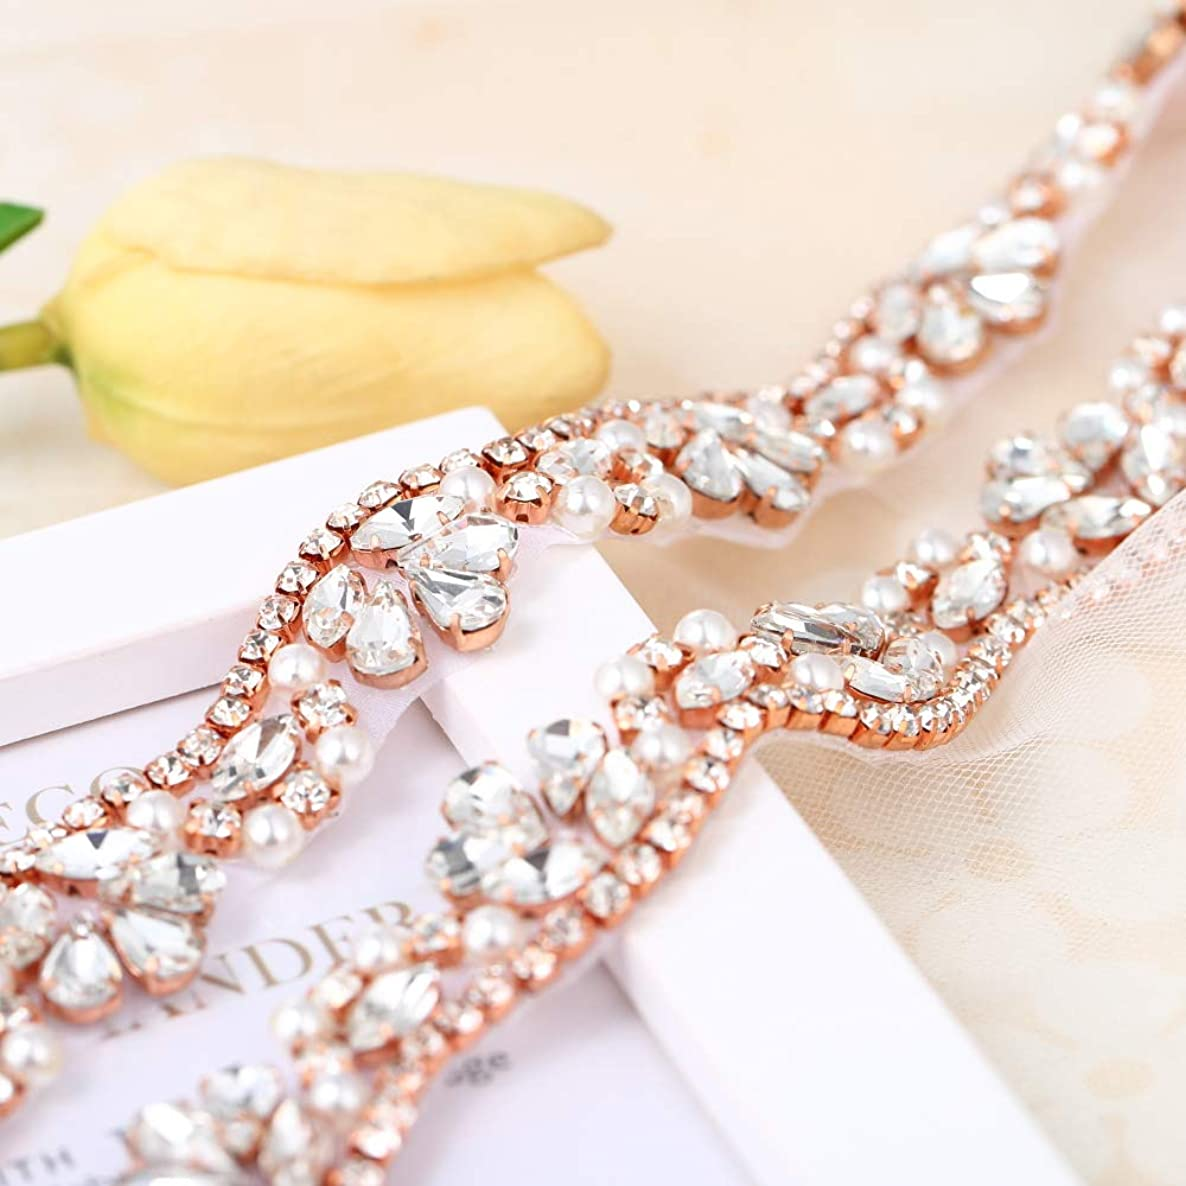 Rhinestone Applique Belt for Bridal Sash Crystals and Pearls-Hot Fix or Sew on-1 Yard(36x0.83in)